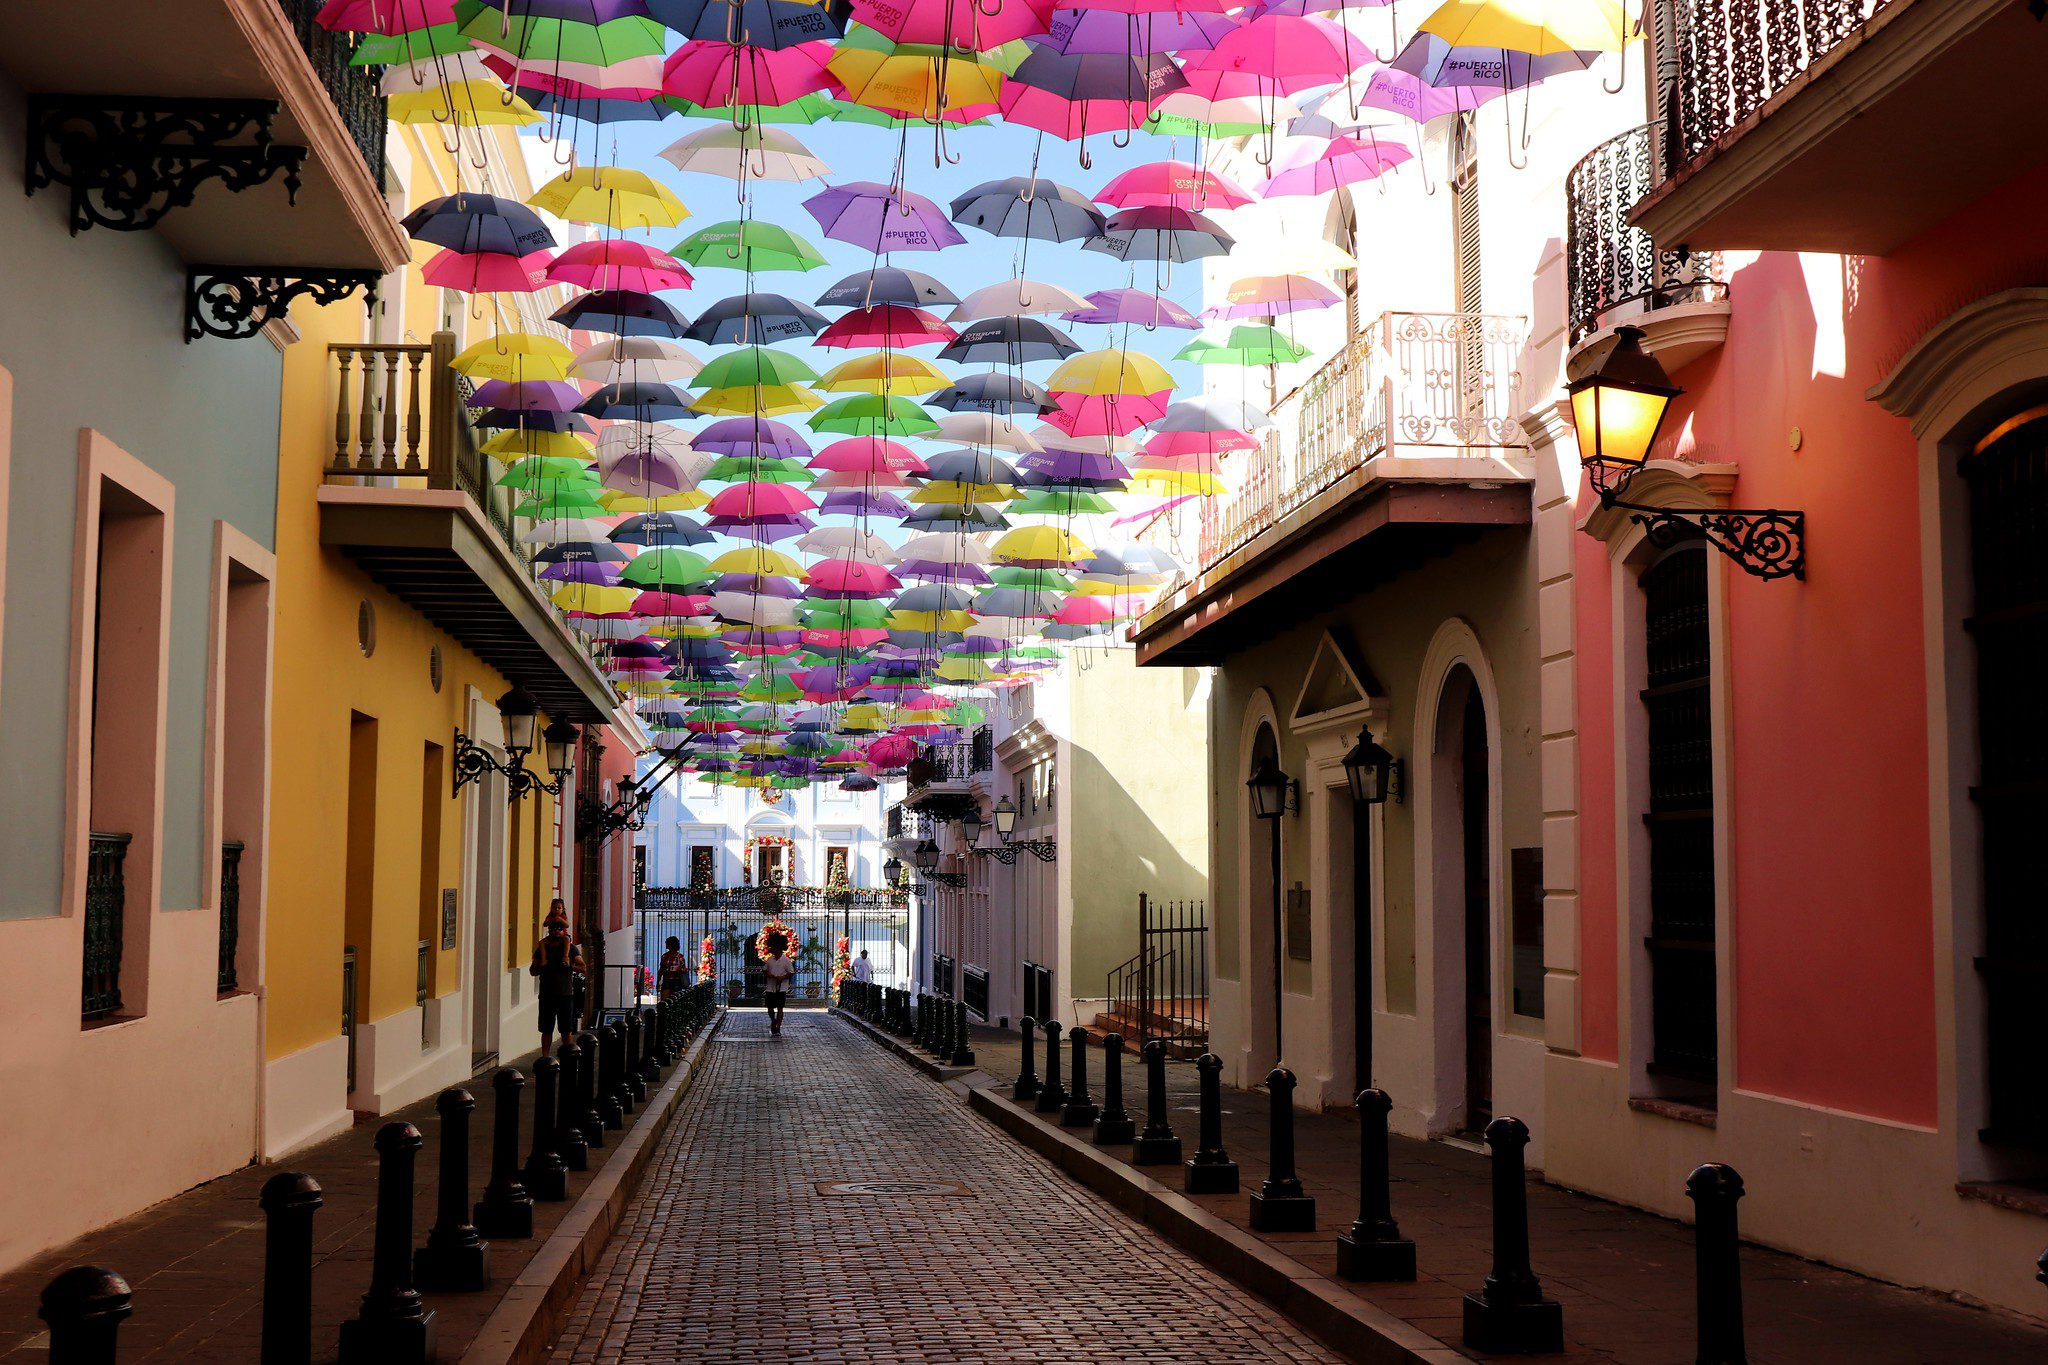 Calle Fortaleza, San Juan, Dozens of color umbrellas